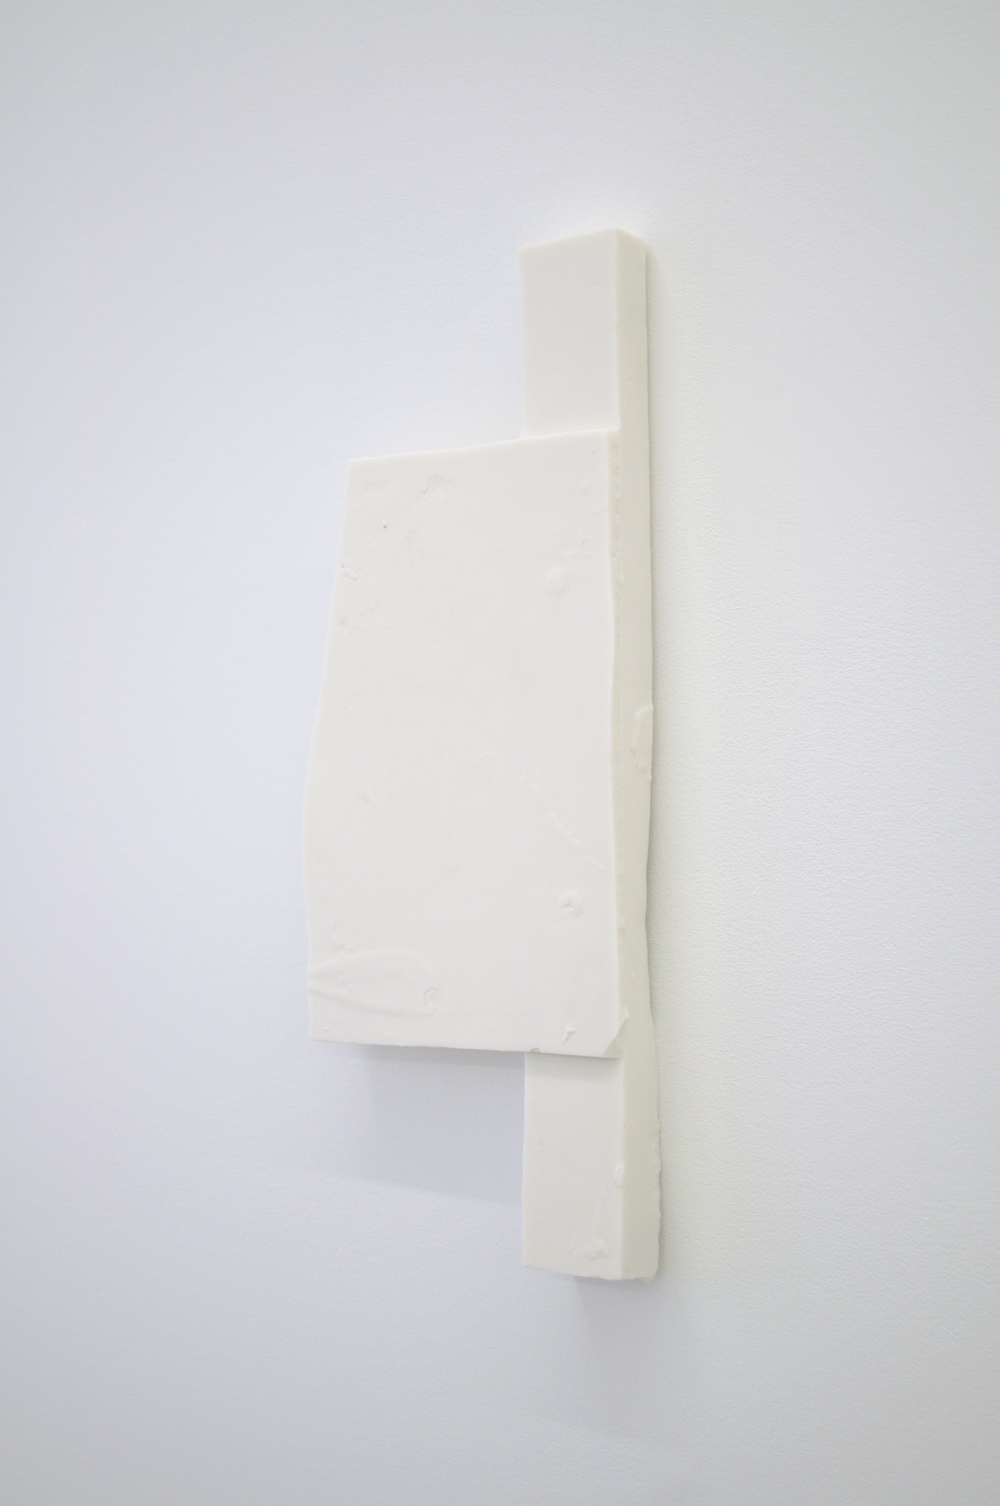 Mold Form AW3 ,  2015  Fired porcelain  11 x 5 x 1 in/ 27.9 x 12.7 x 2.5 cm